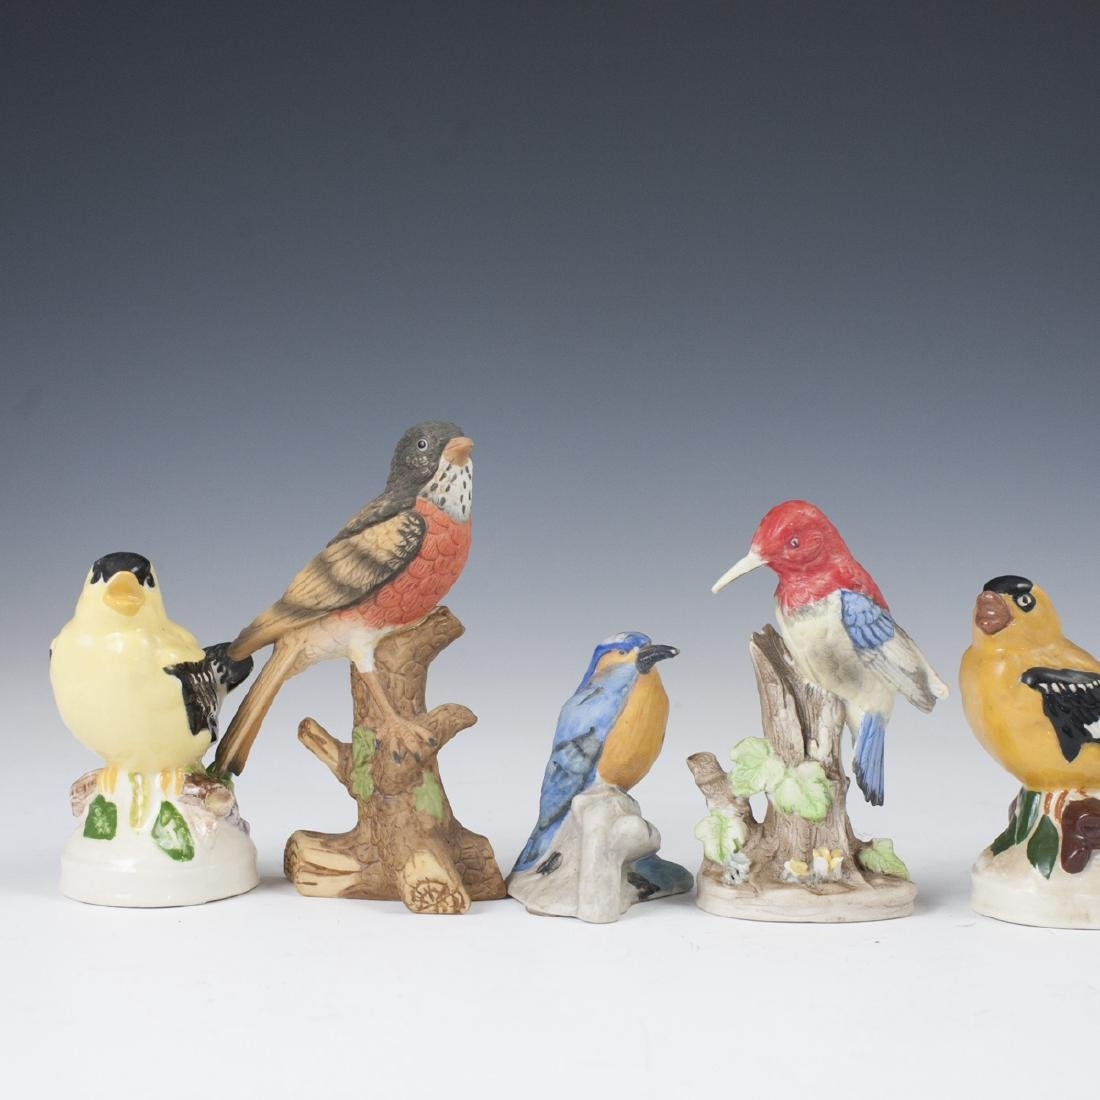 Vintage Porcelain Bird Figurines - 2